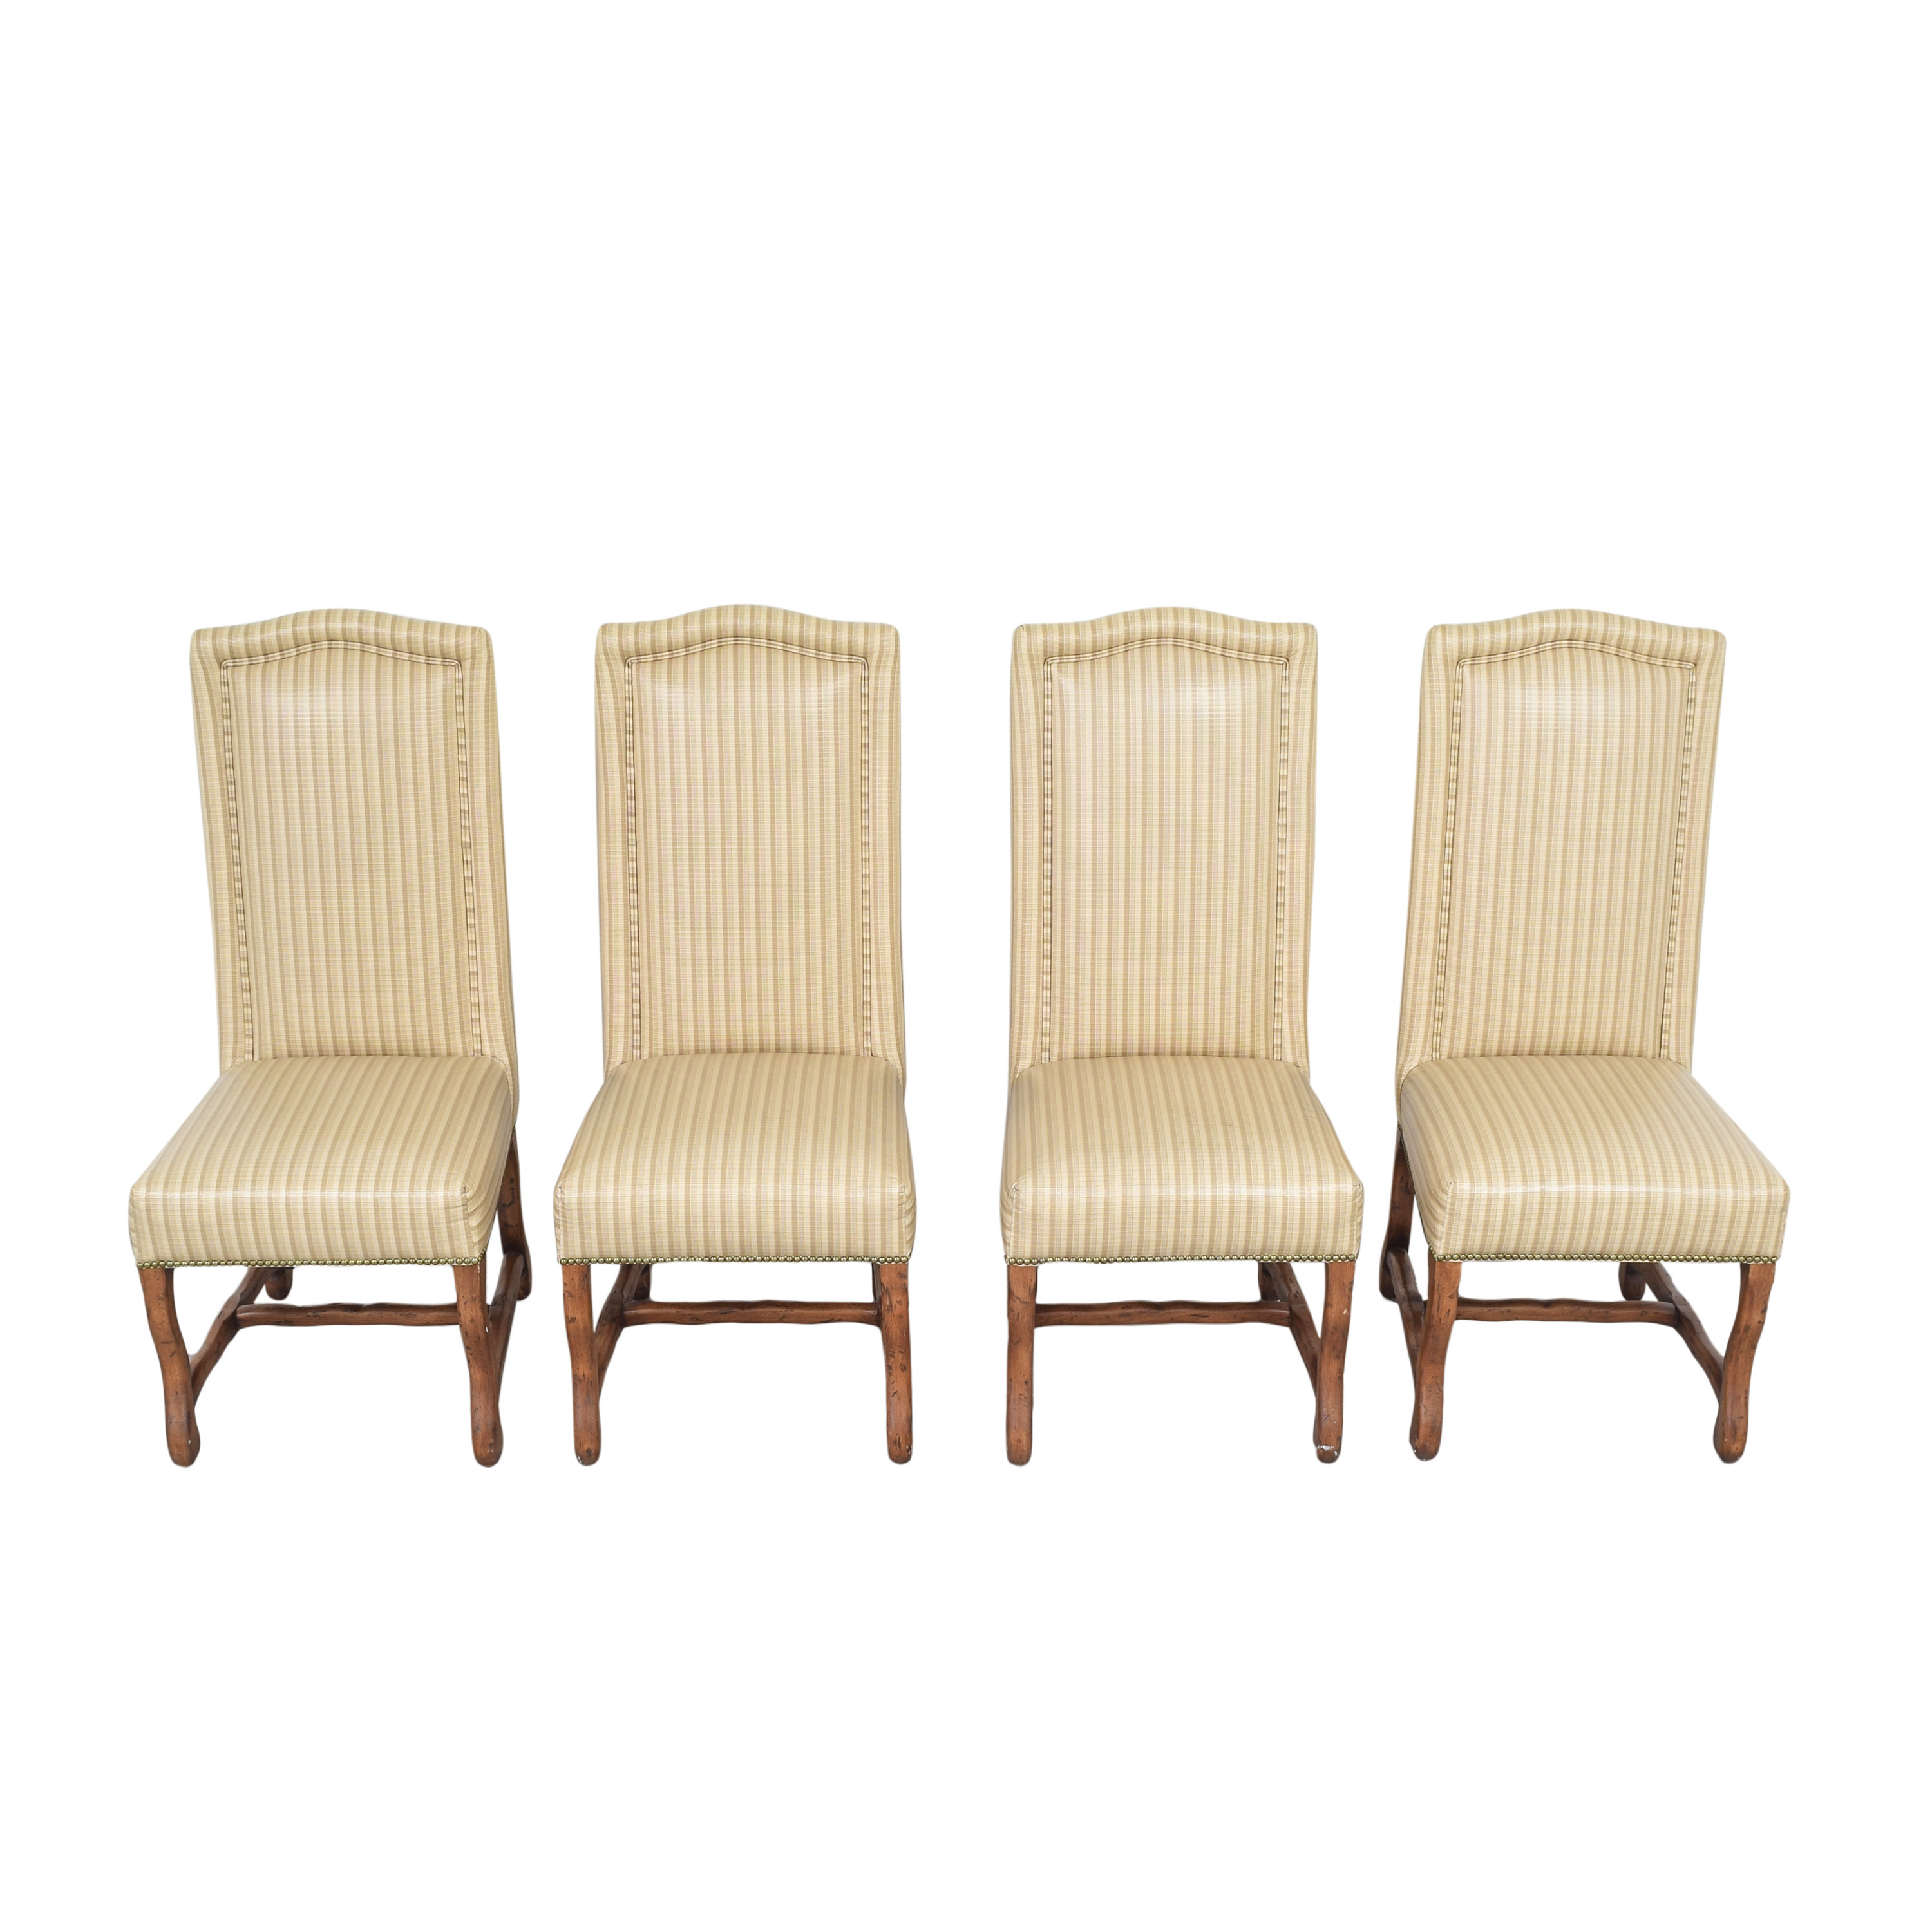 Fremarc Designs Fremarc Designs Provence Side Dining Chairs on sale